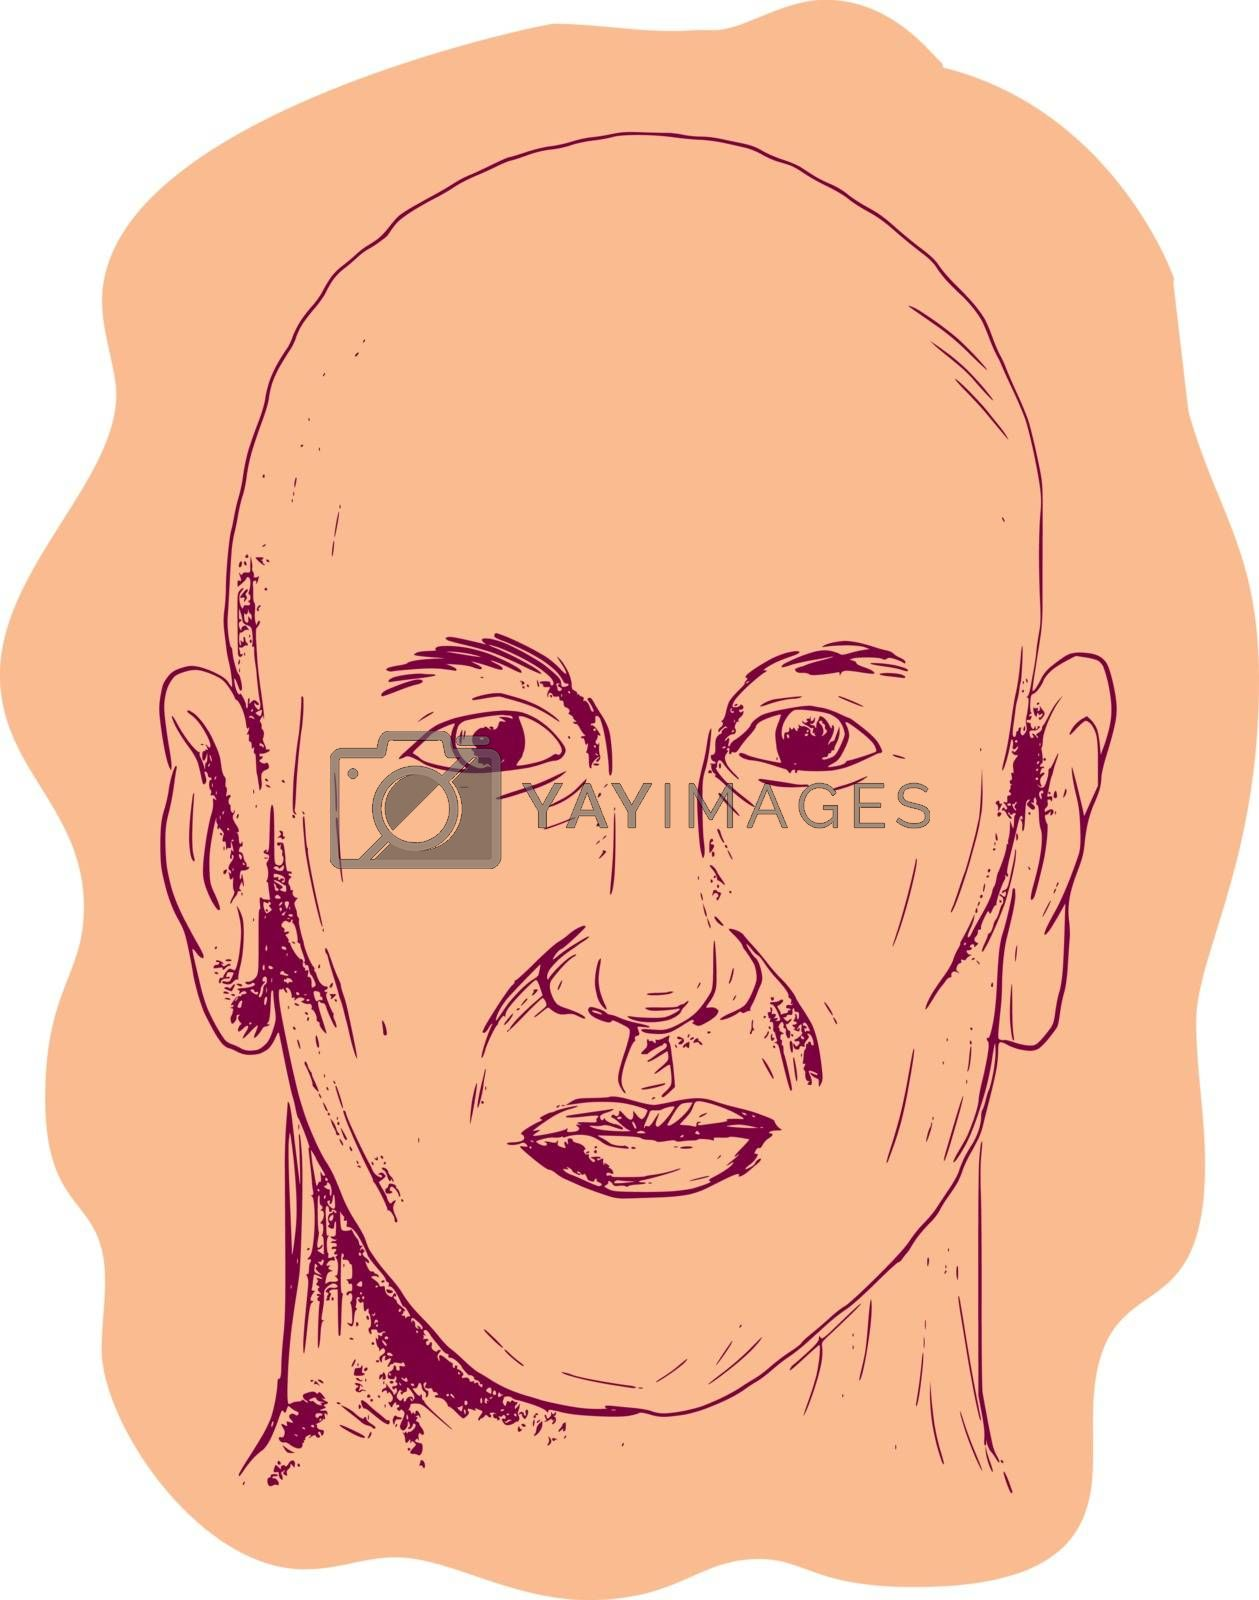 Drawing sketch style illustration of head of a bald caucasian male viewed from front set on isolated white background.